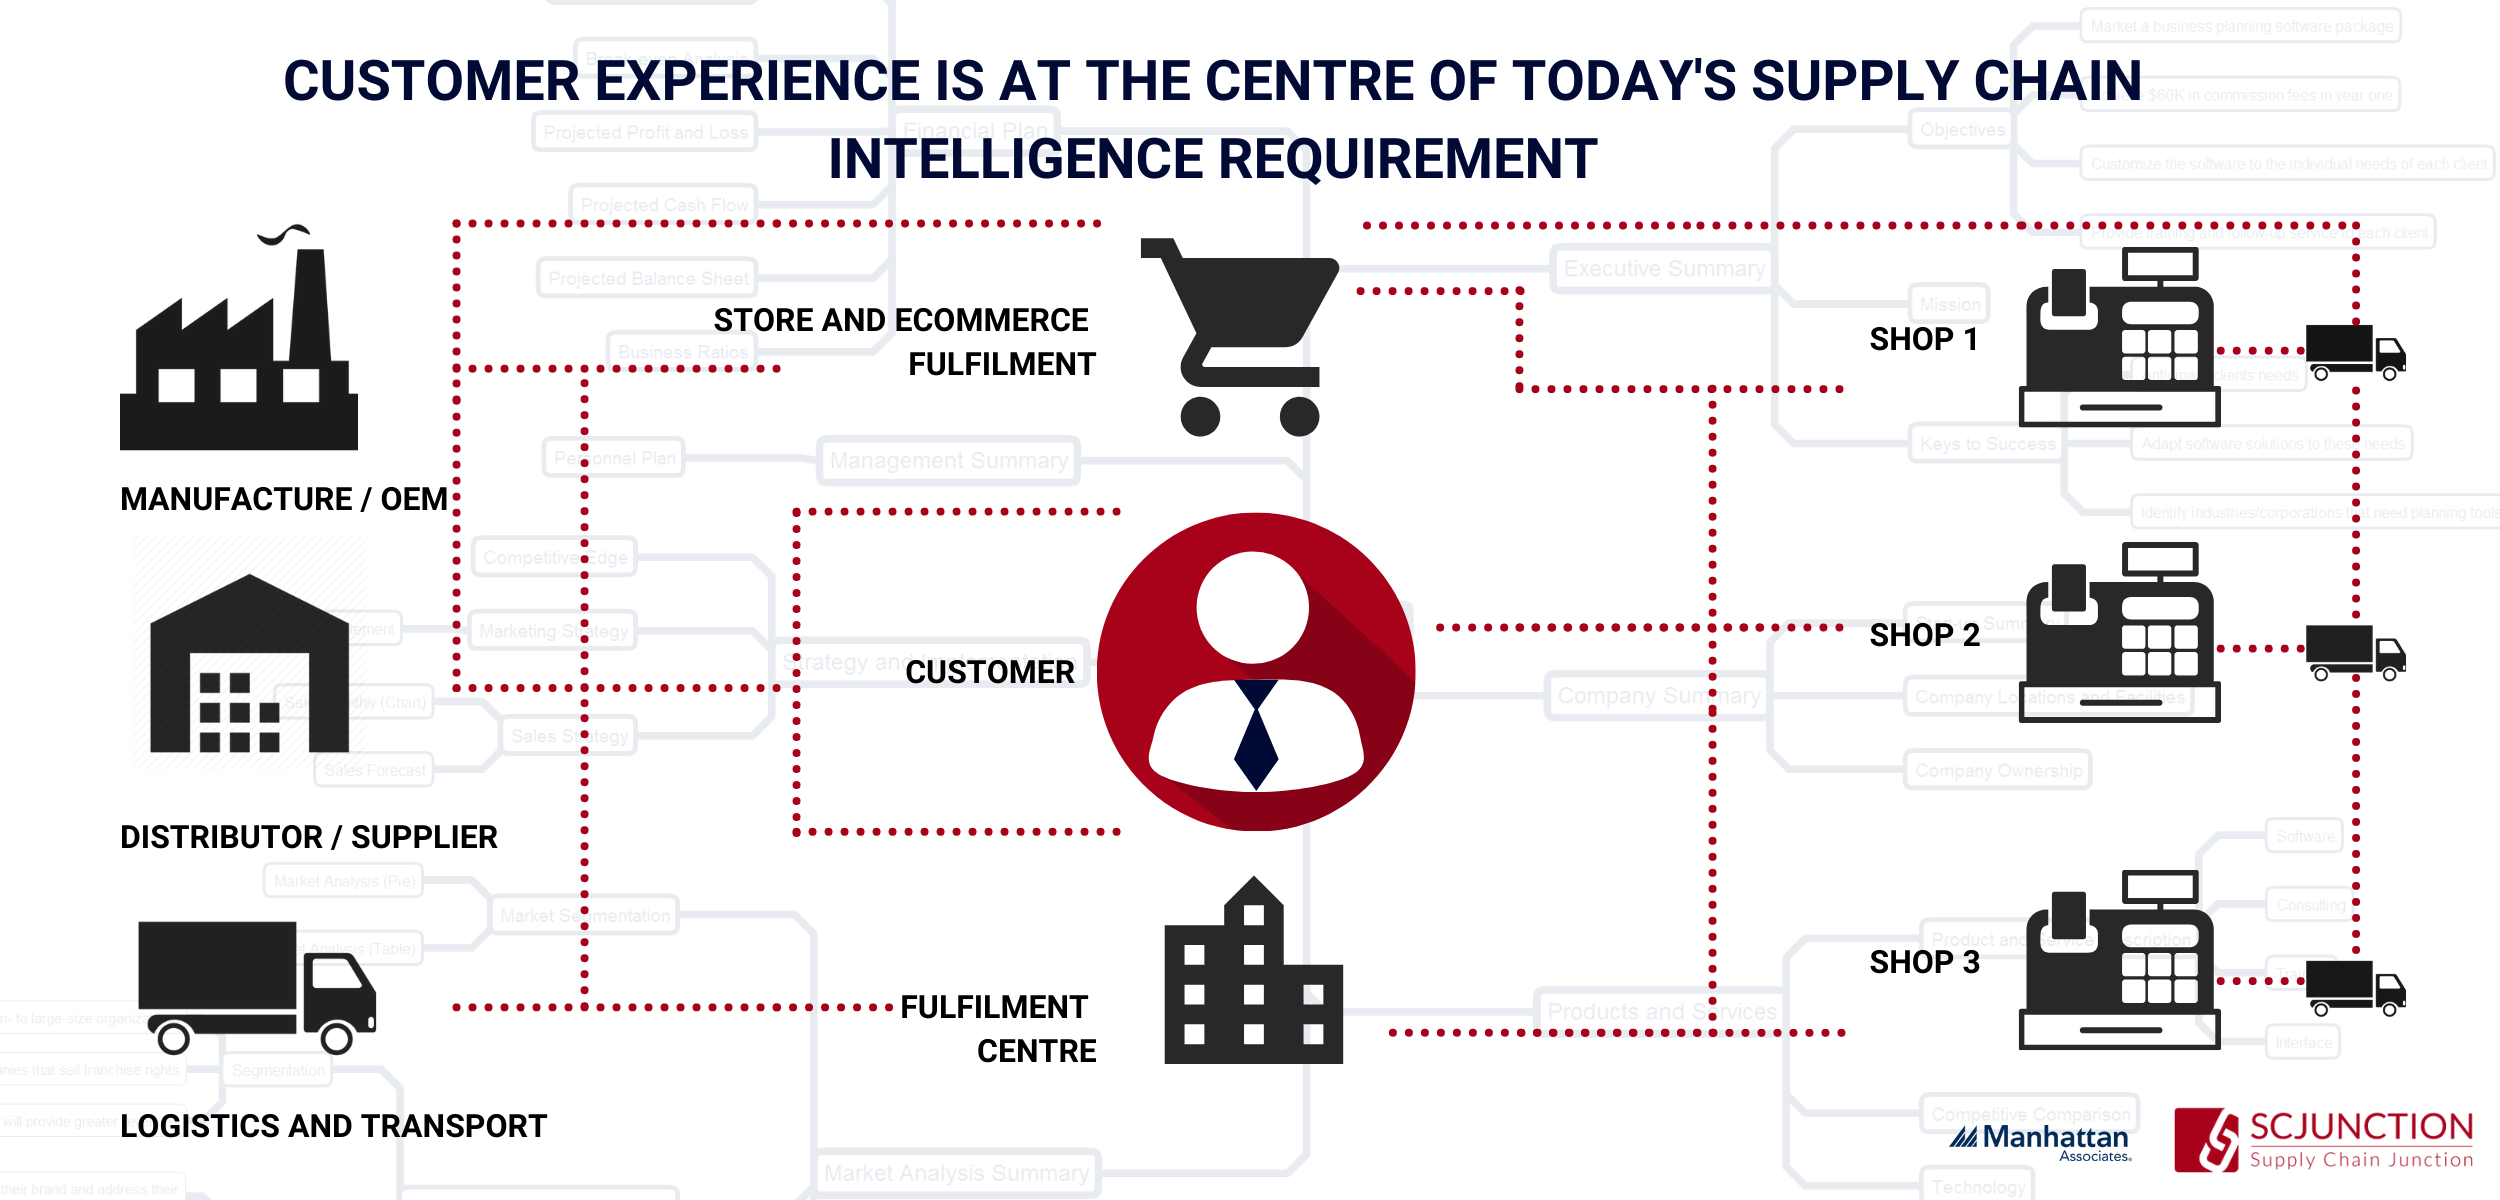 Customer Experience and Supply Chain Intelligence